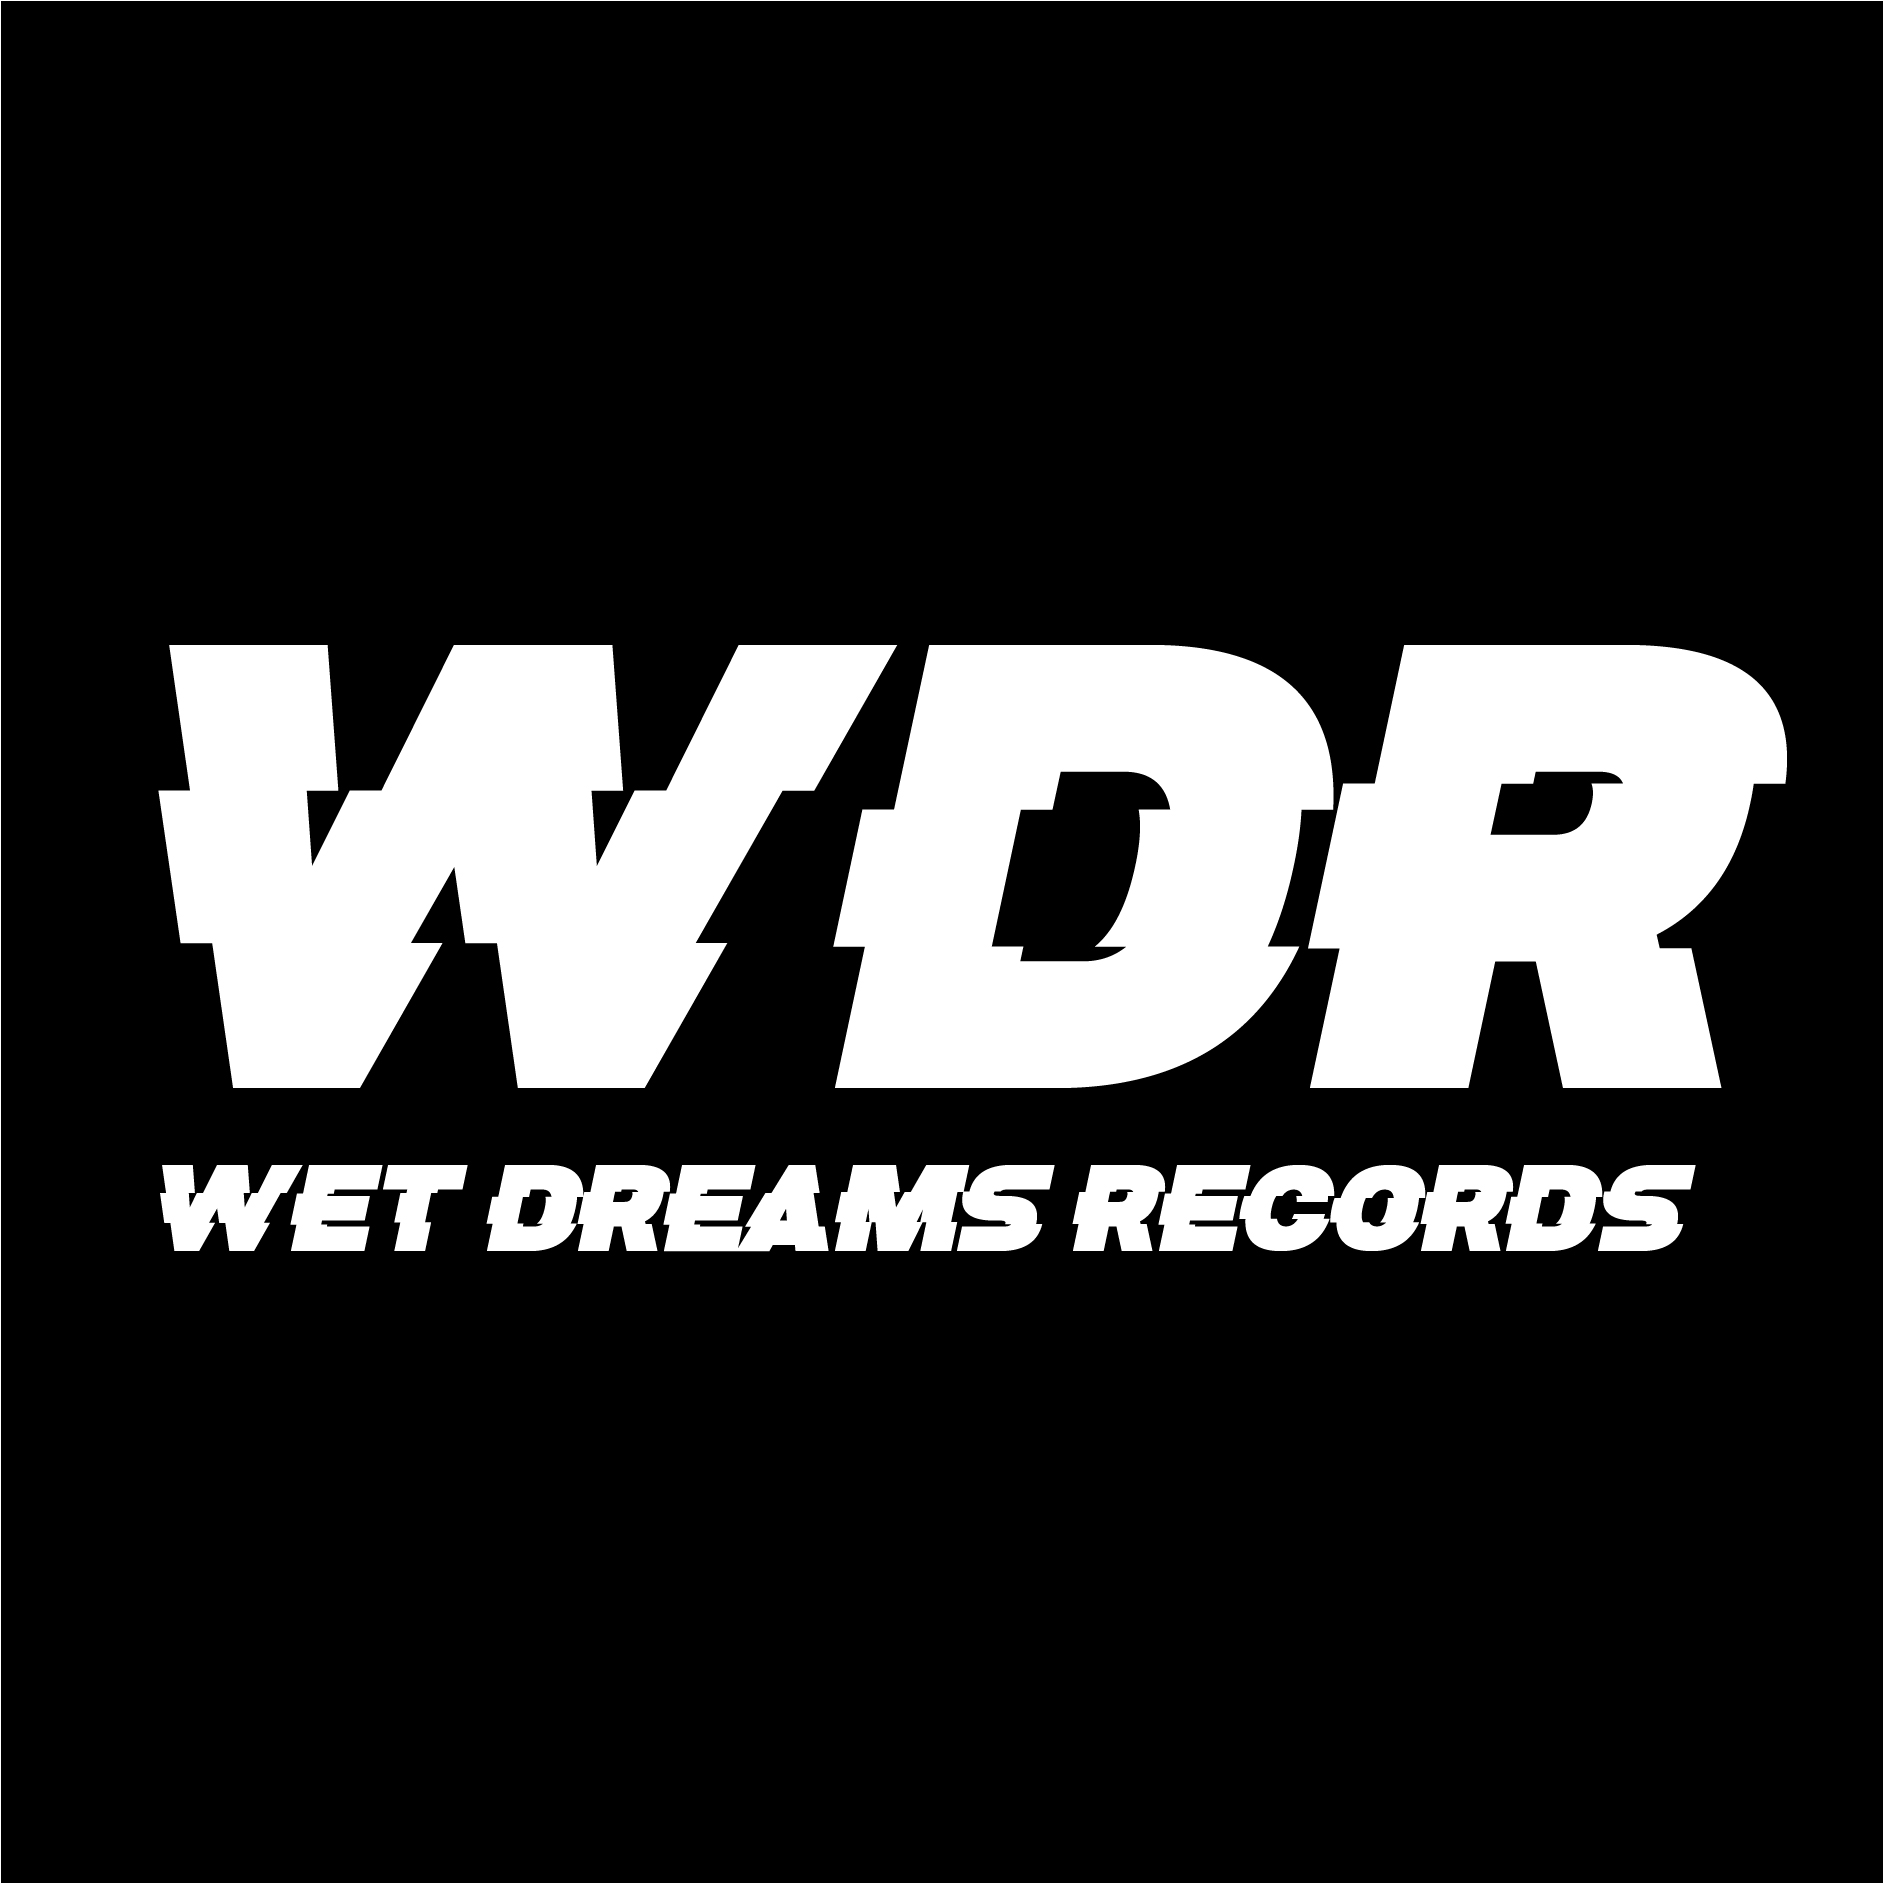 WET DREAMS RECORDS